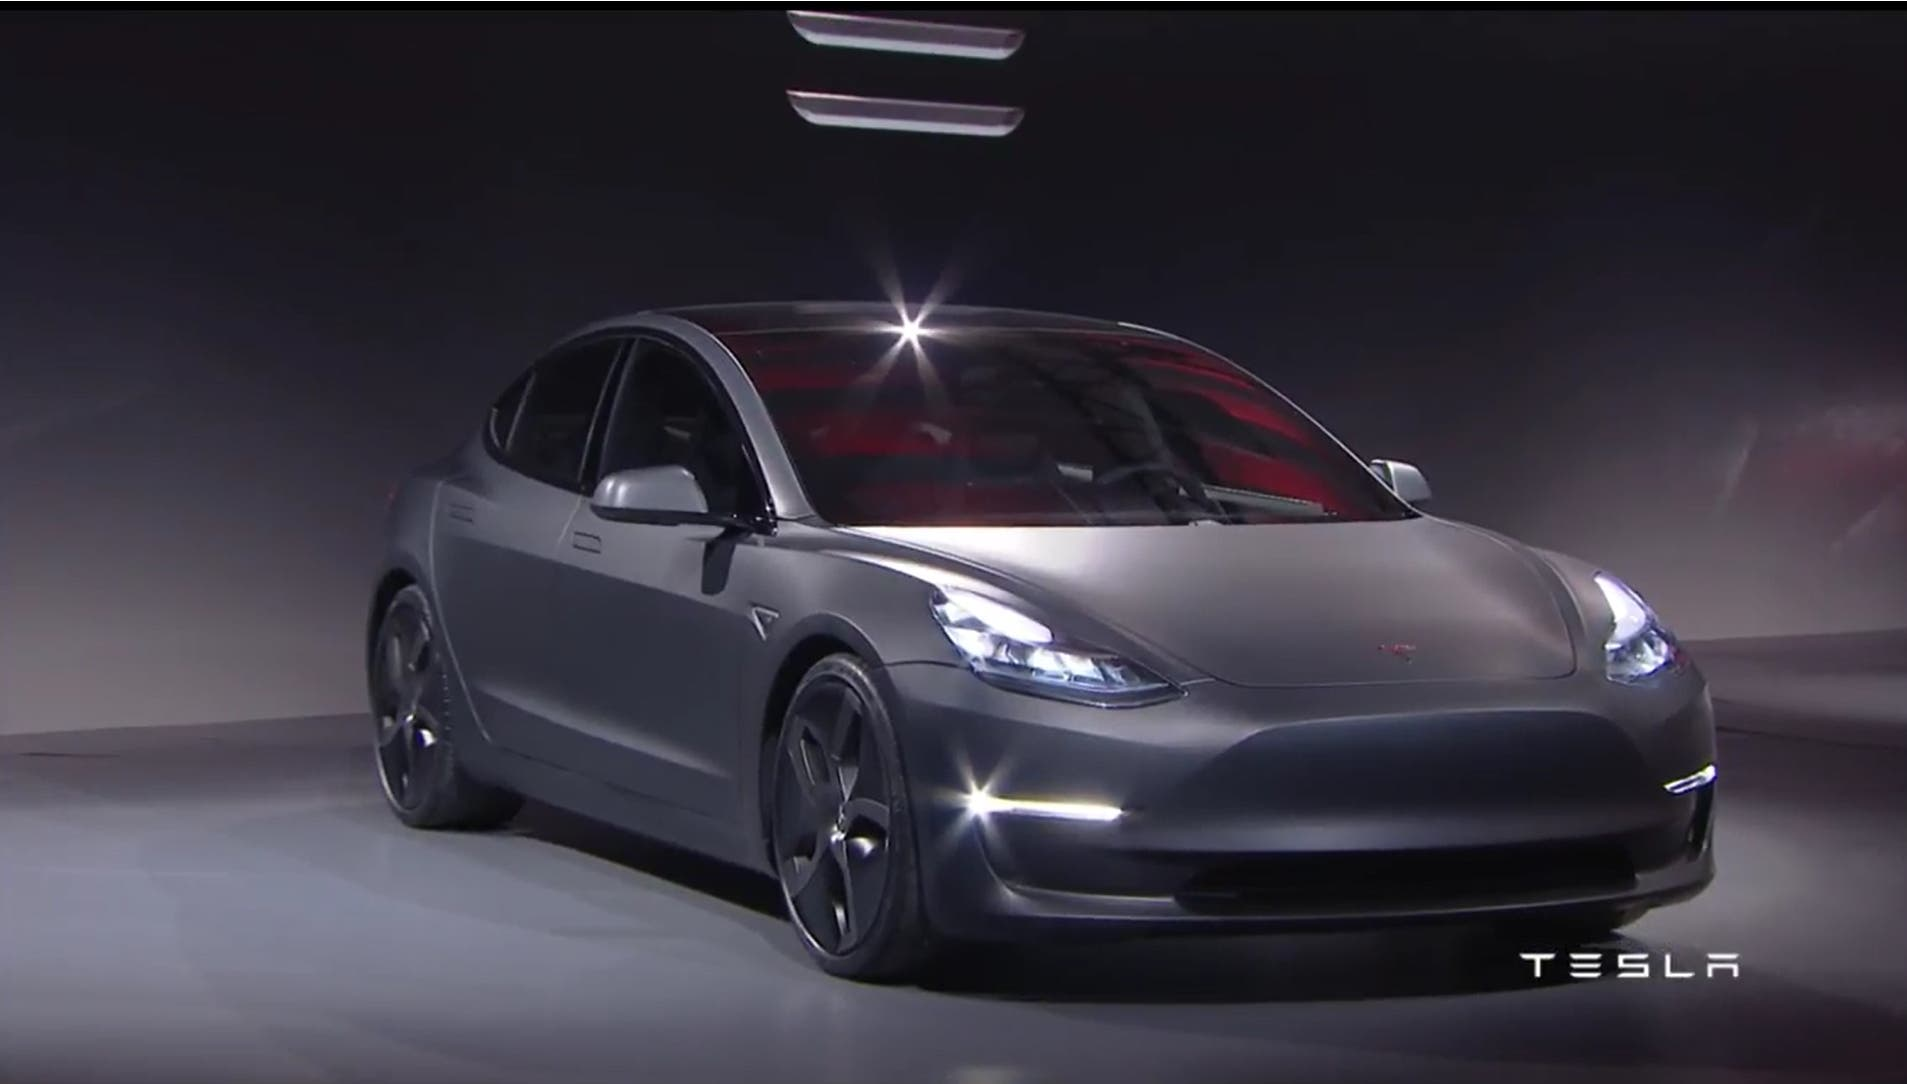 Tesla Update >> Tesla Model 3 -Alle Daten & Infos: Supercharger kostet extra